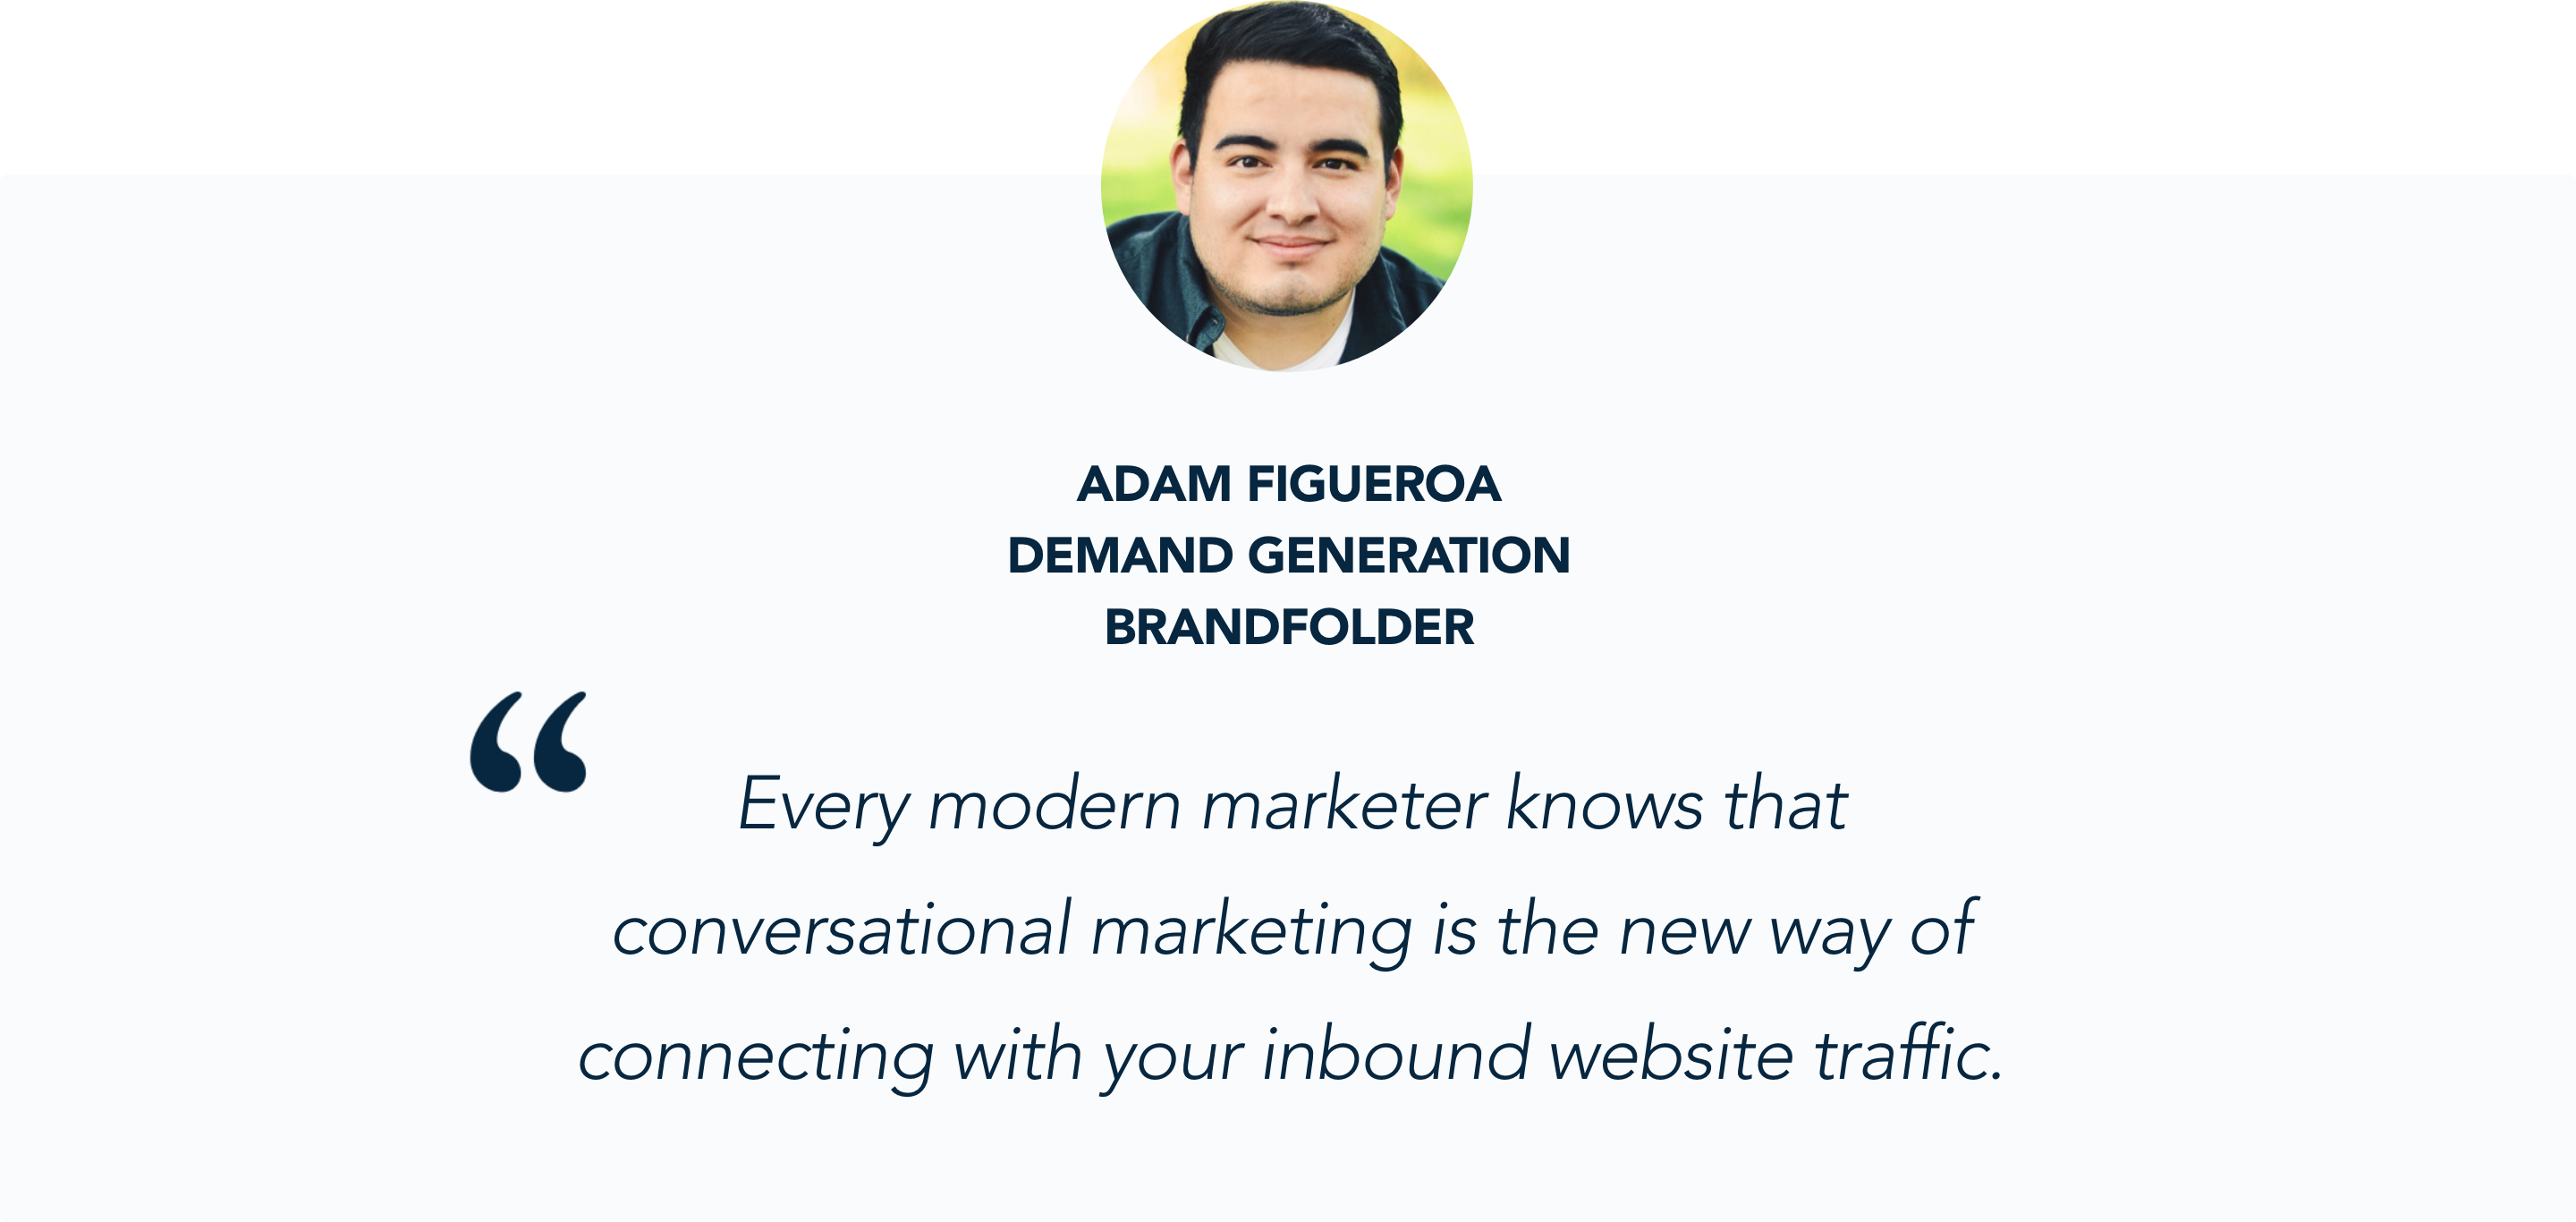 Adam Figueroa, Demand Generation at Brandfolder, shares is experience with Qualified's Conversational Marketing Platform